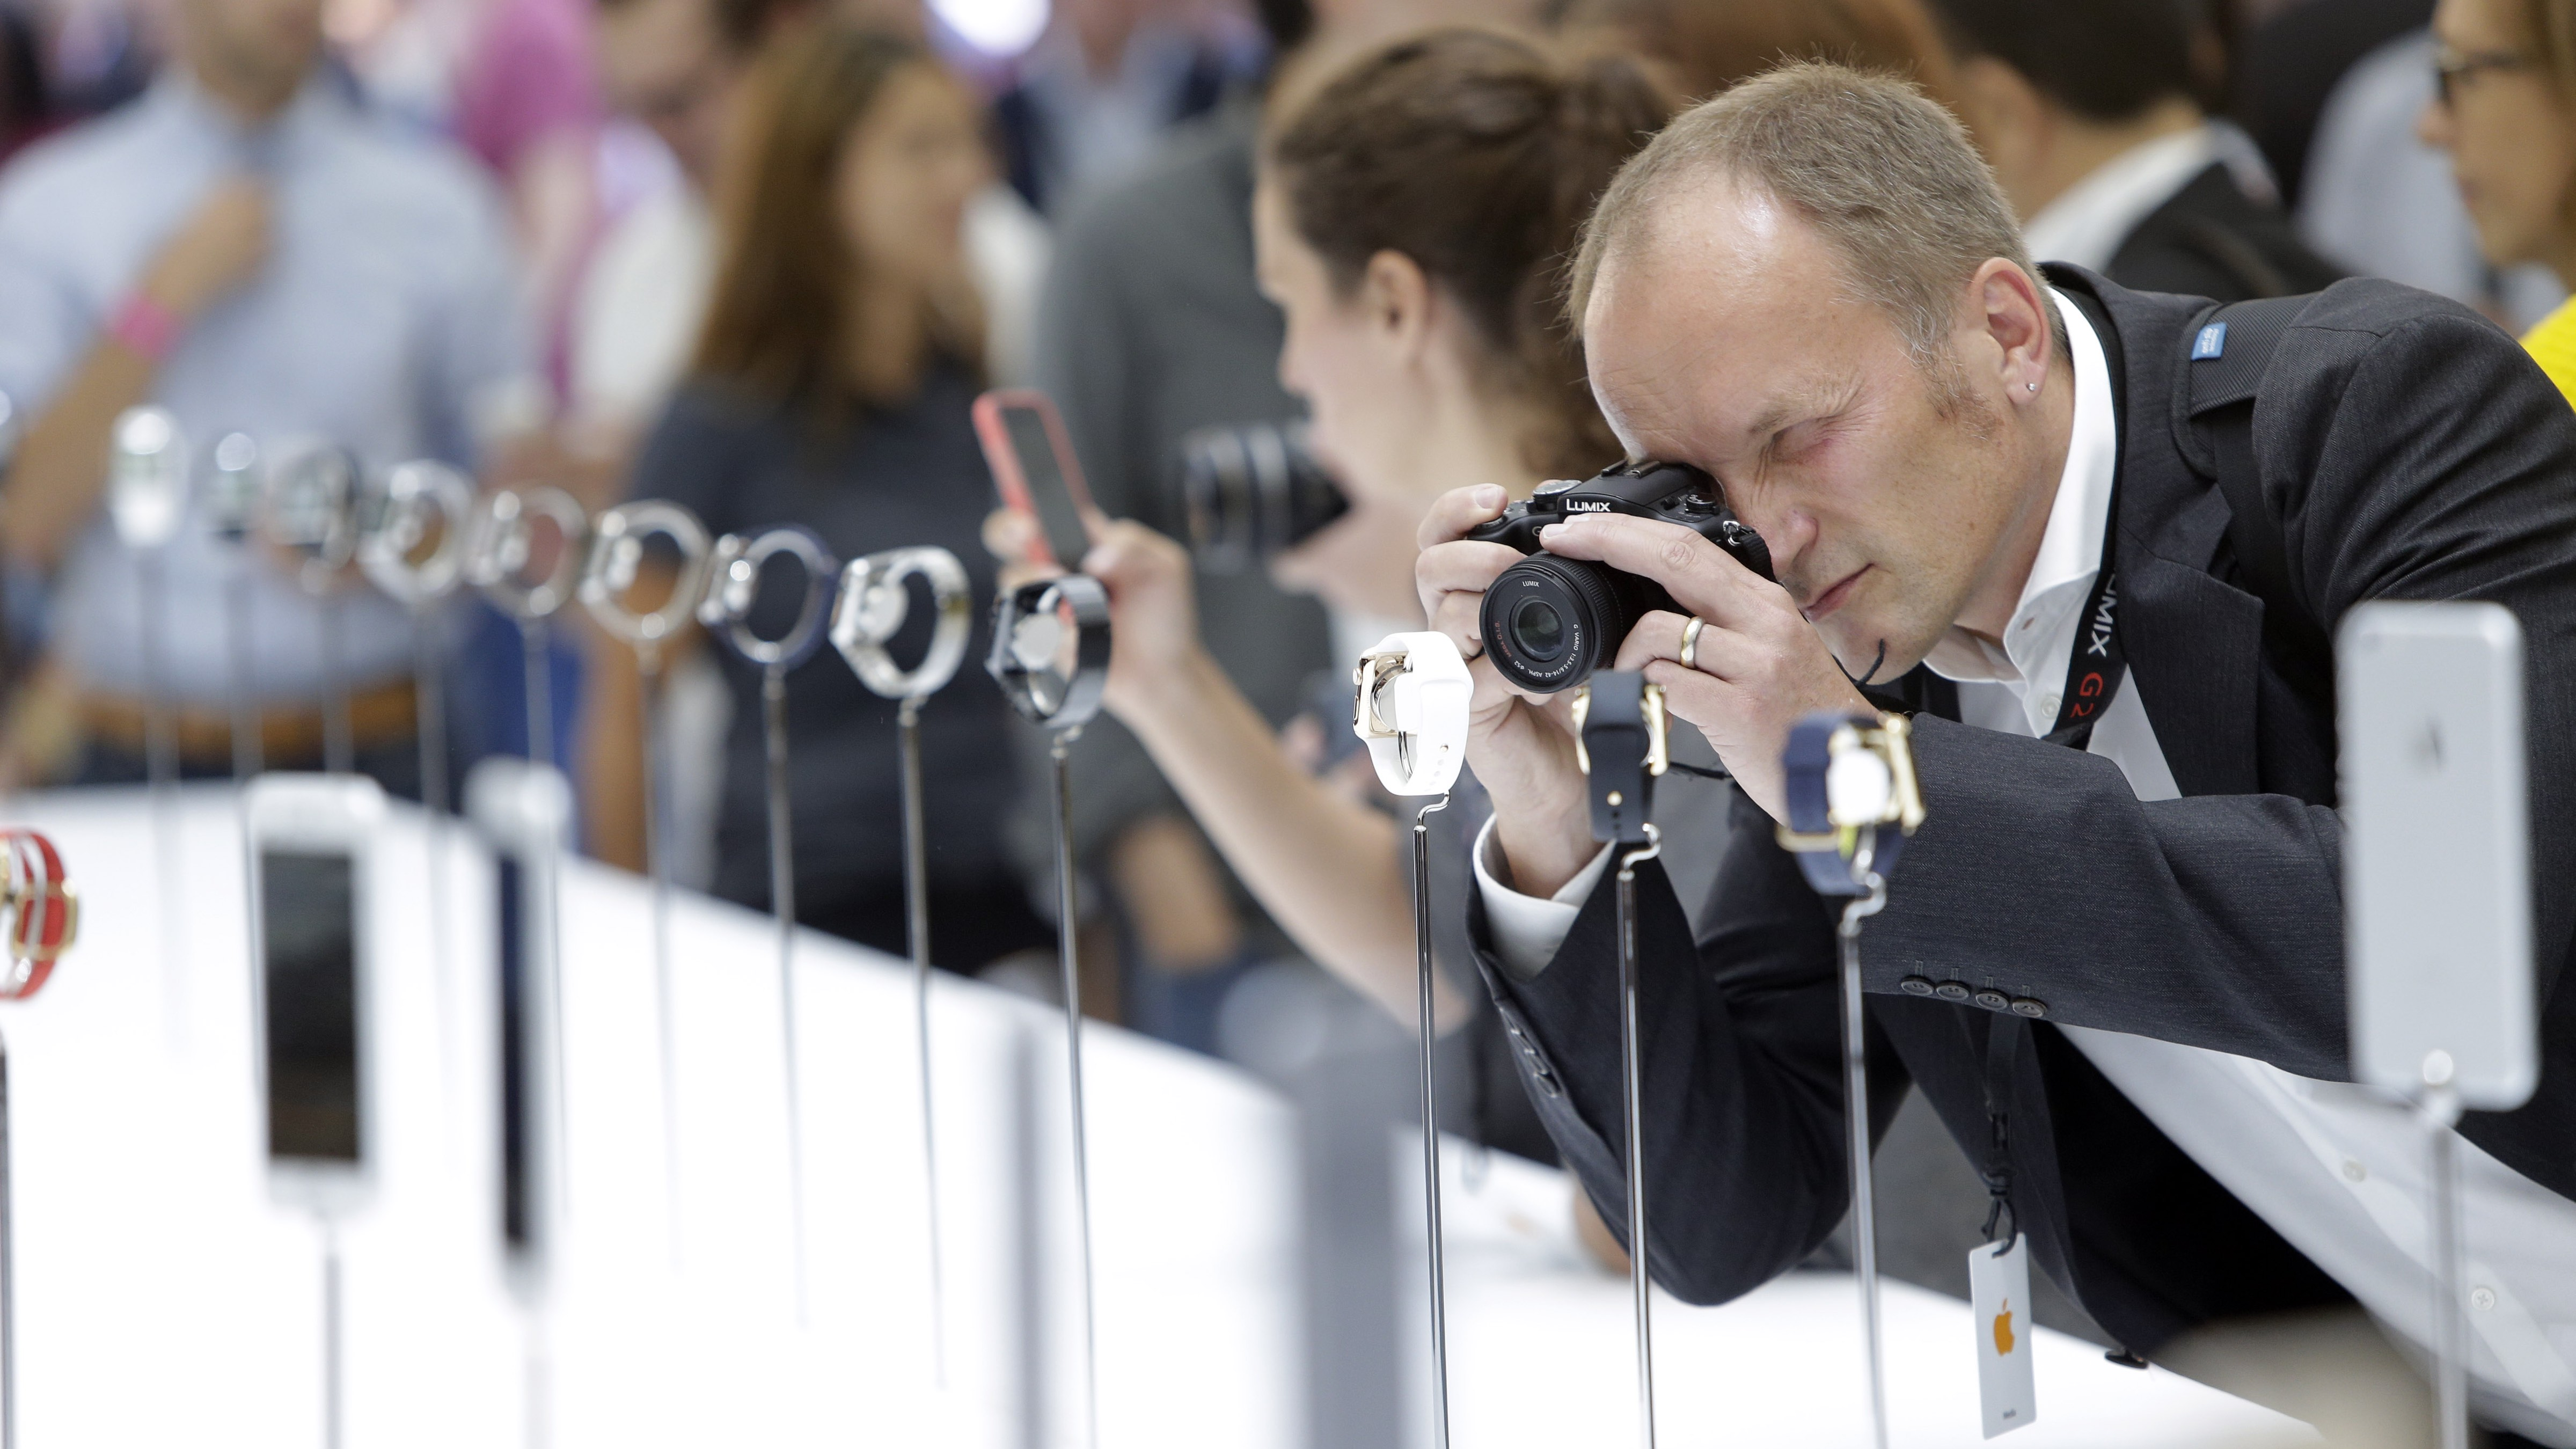 A man photographs Apple Watches during the product release announcement event on Tuesday, Sept. 9, 2014, in Cupertino, Calif. (AP Photo/Marcio Jose Sanchez)